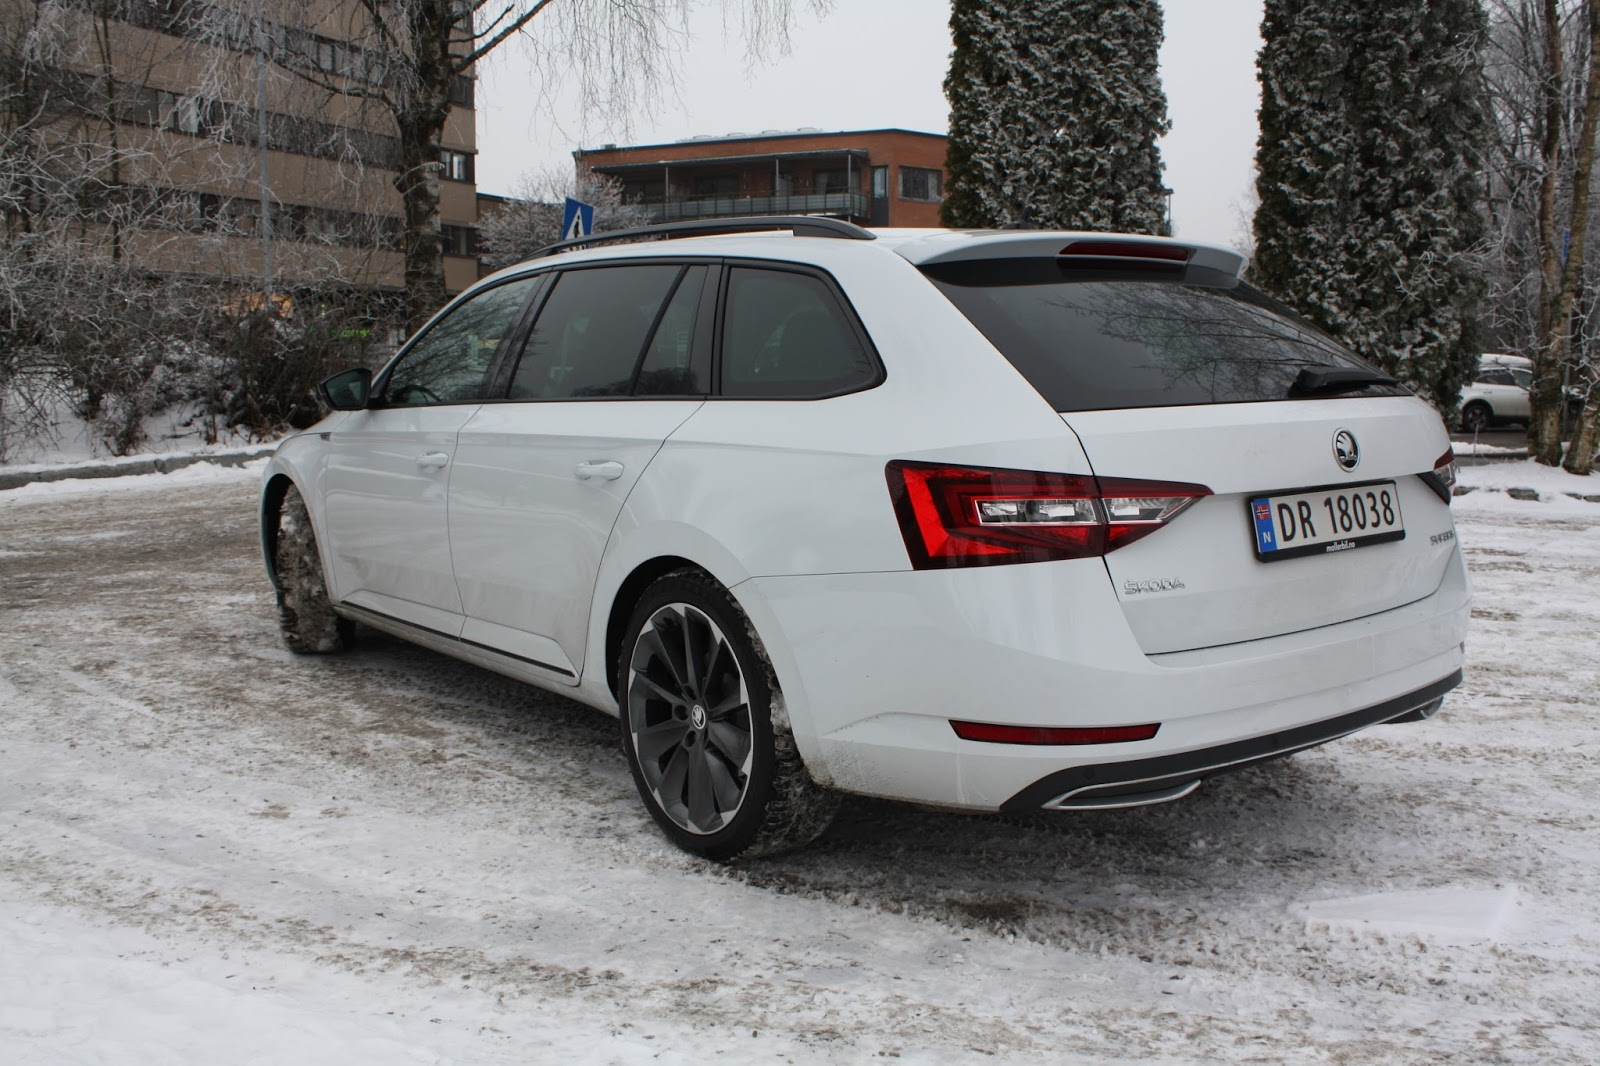 test skoda superb 1 8 tsi 180 hk sportline stasjonsvogn bil og motorbloggen. Black Bedroom Furniture Sets. Home Design Ideas